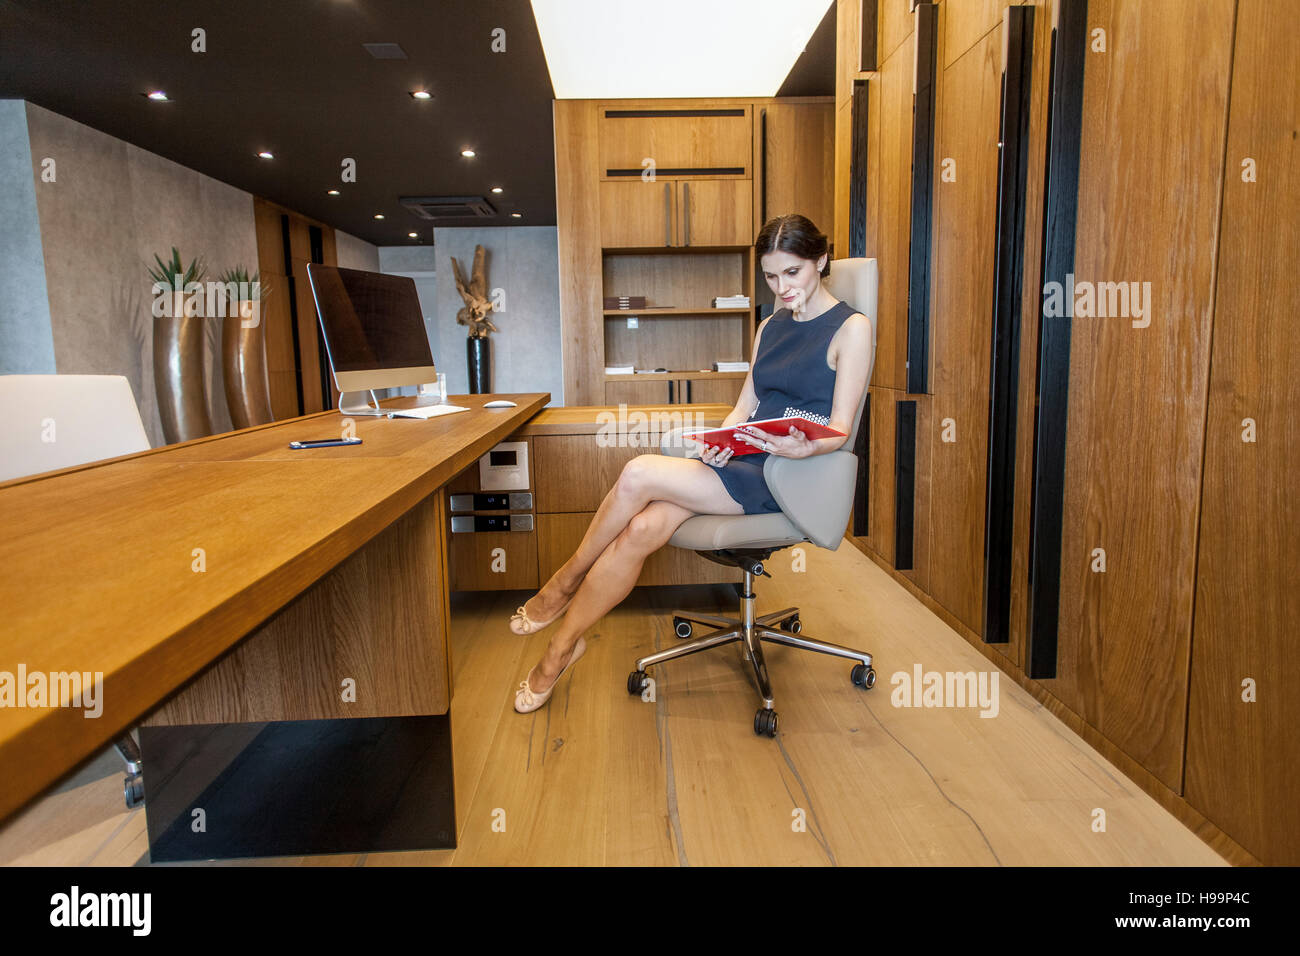 Businesswoman in mini dress sits at reception desk - Stock Image